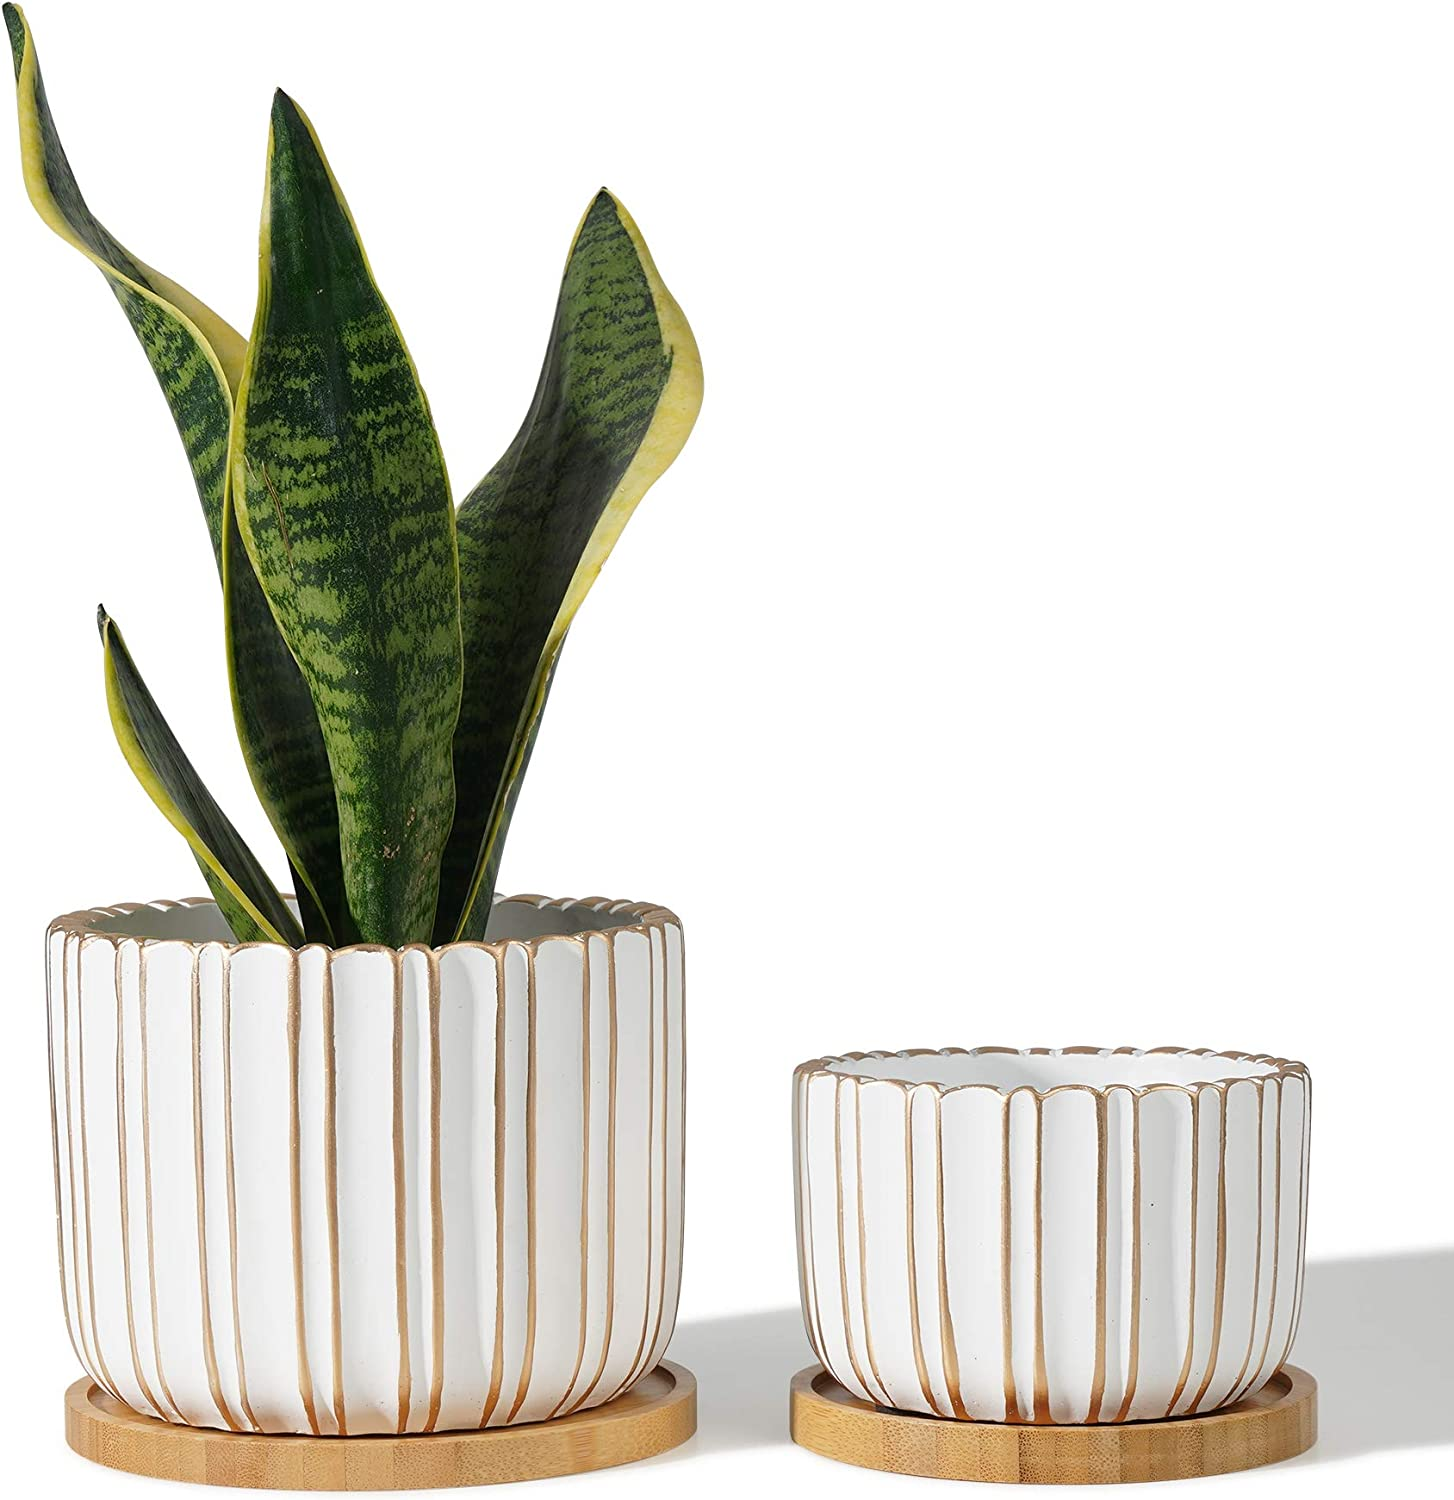 POTEY 057402 Cement Planter Pots - 4.7 Indoor Inventory cleanup selling sale Concret Credence 5.7 + Inch